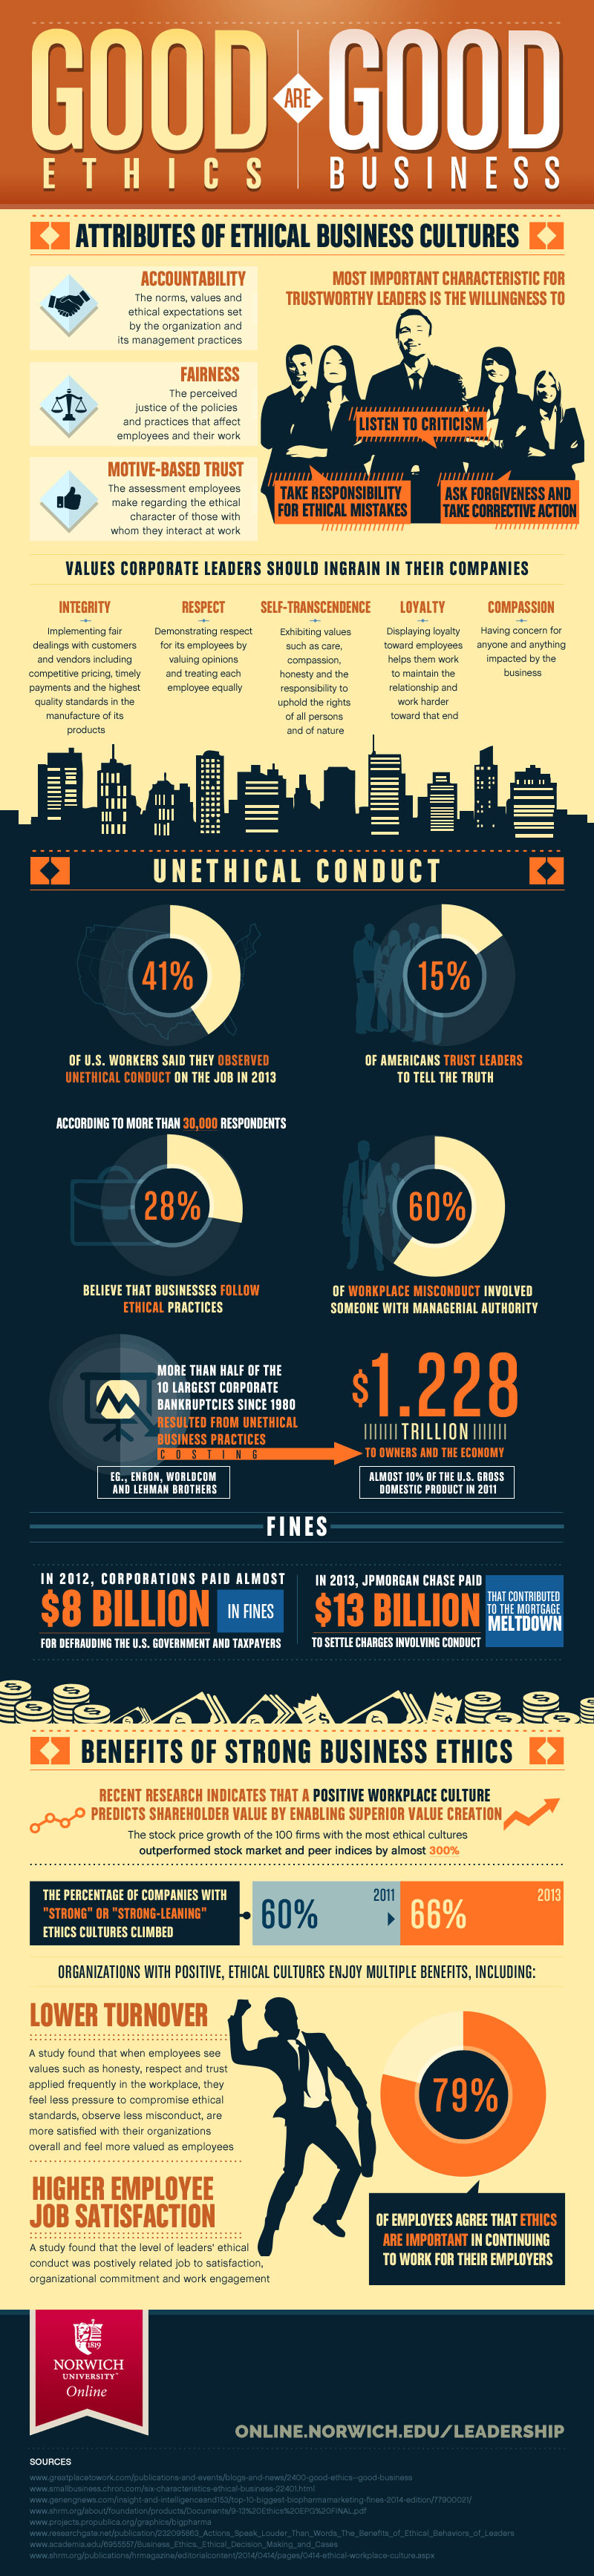 infographic about ethics in business